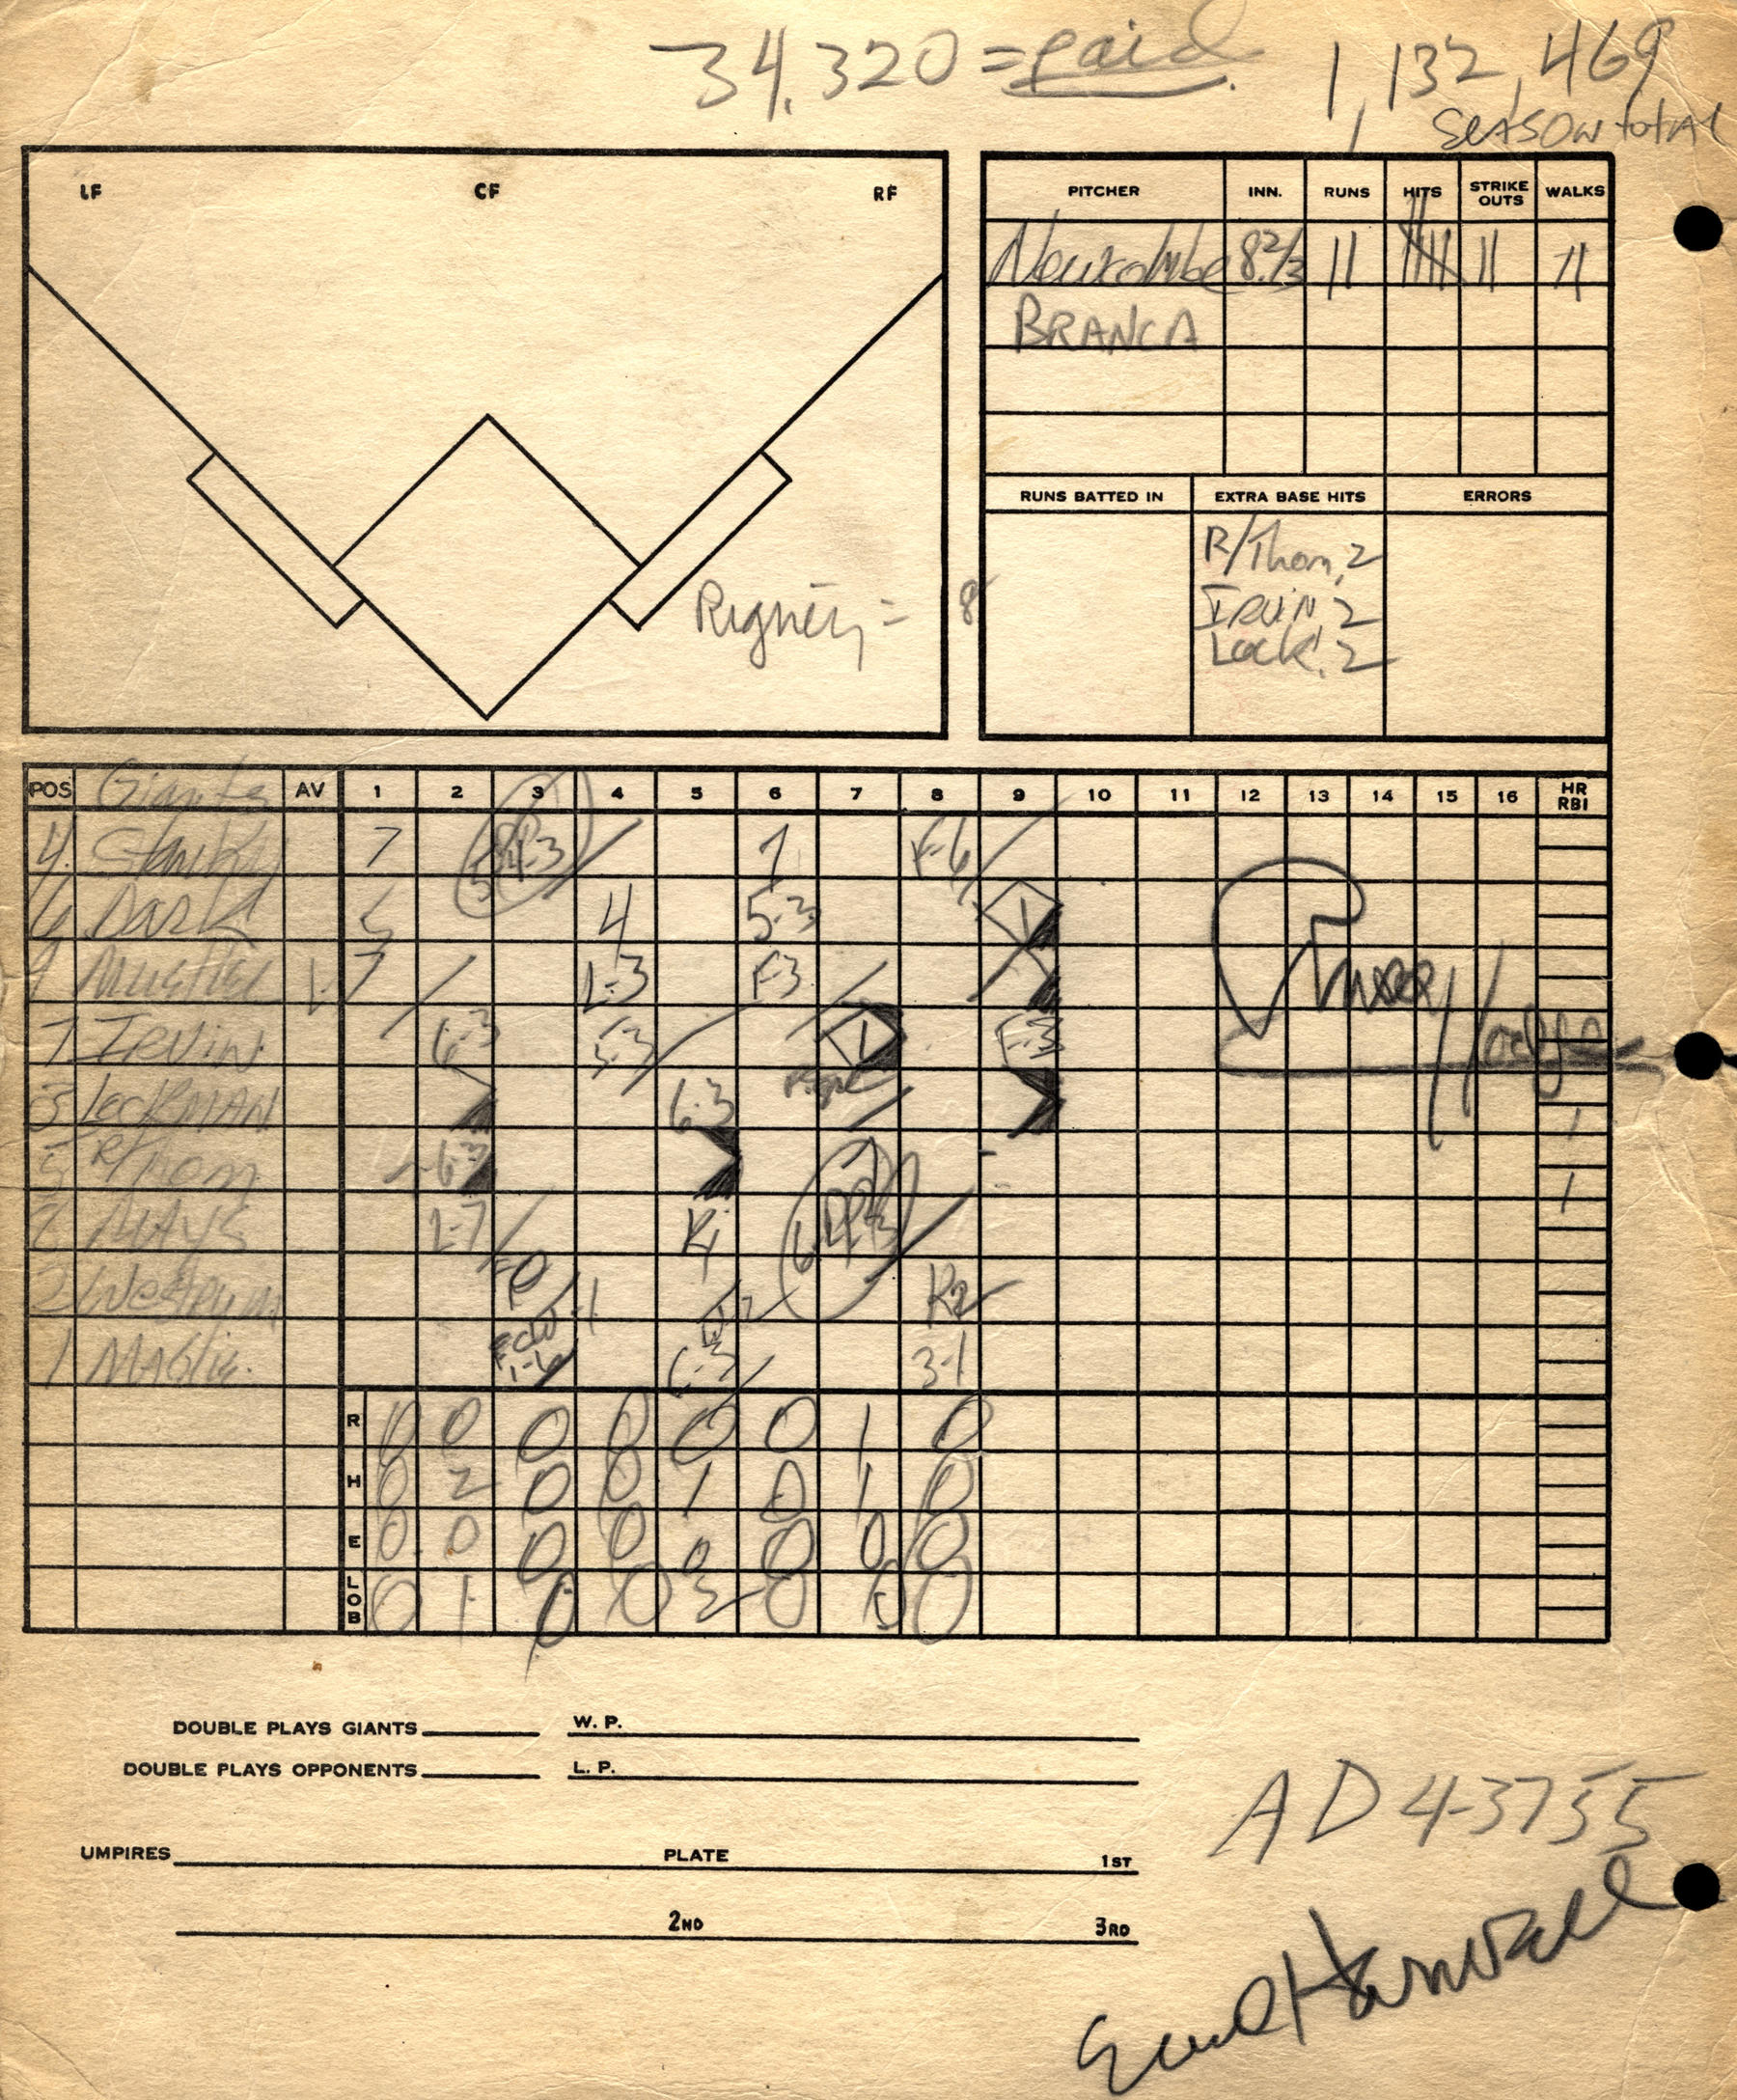 Scorecard from Game 3 of the 1951 National League playoff, BL-1466.70 (National Baseball Hall of Fame Library)